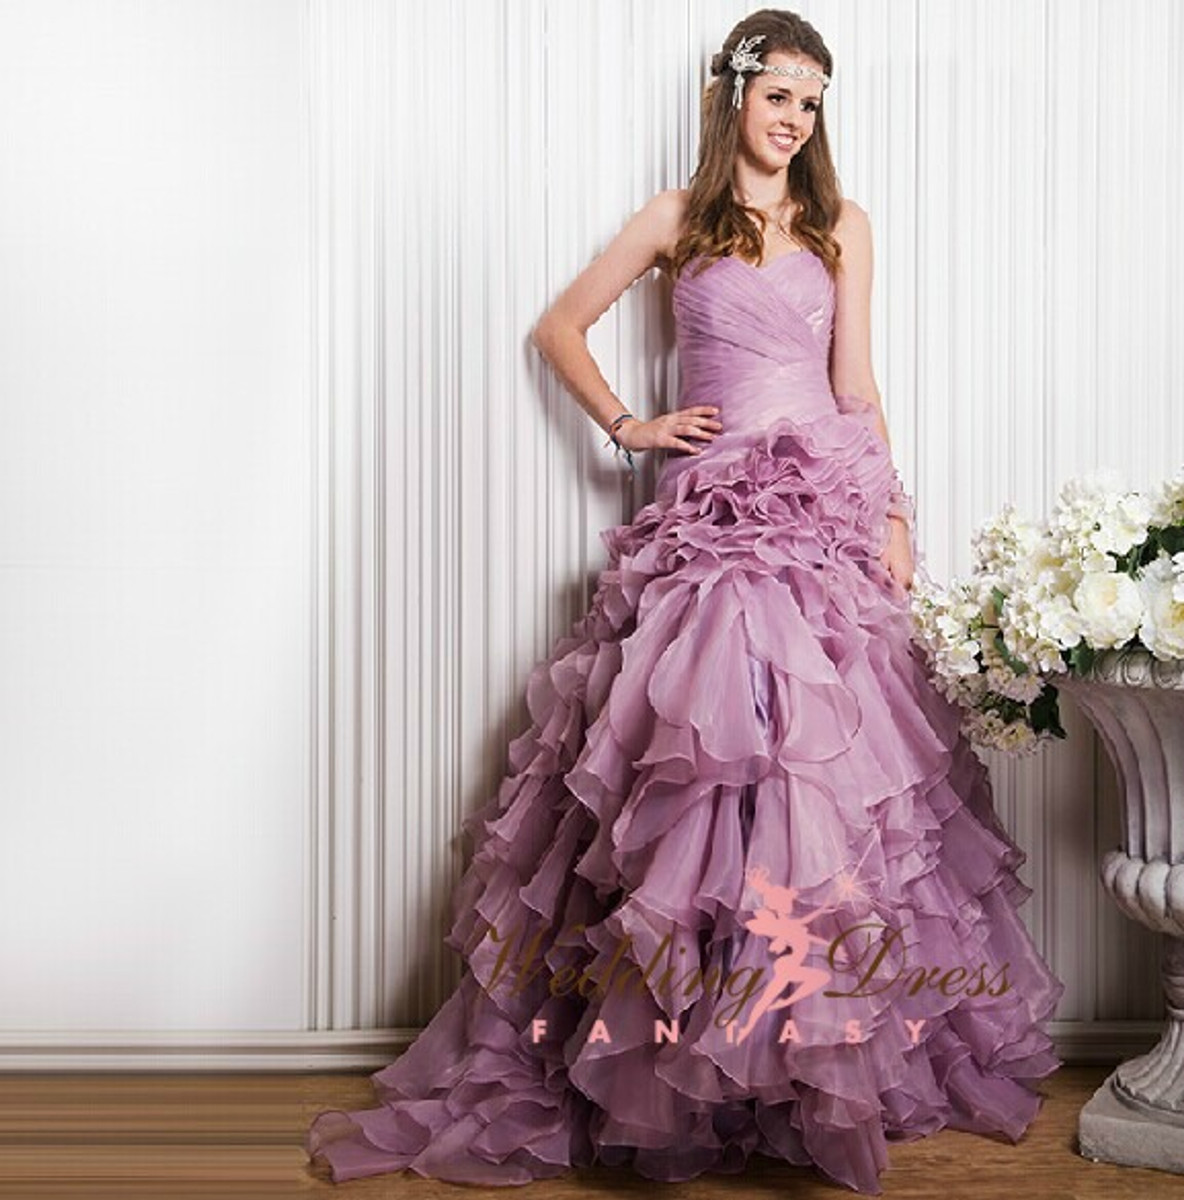 Lilac Wedding Dress - Wedding Dress Fantasy